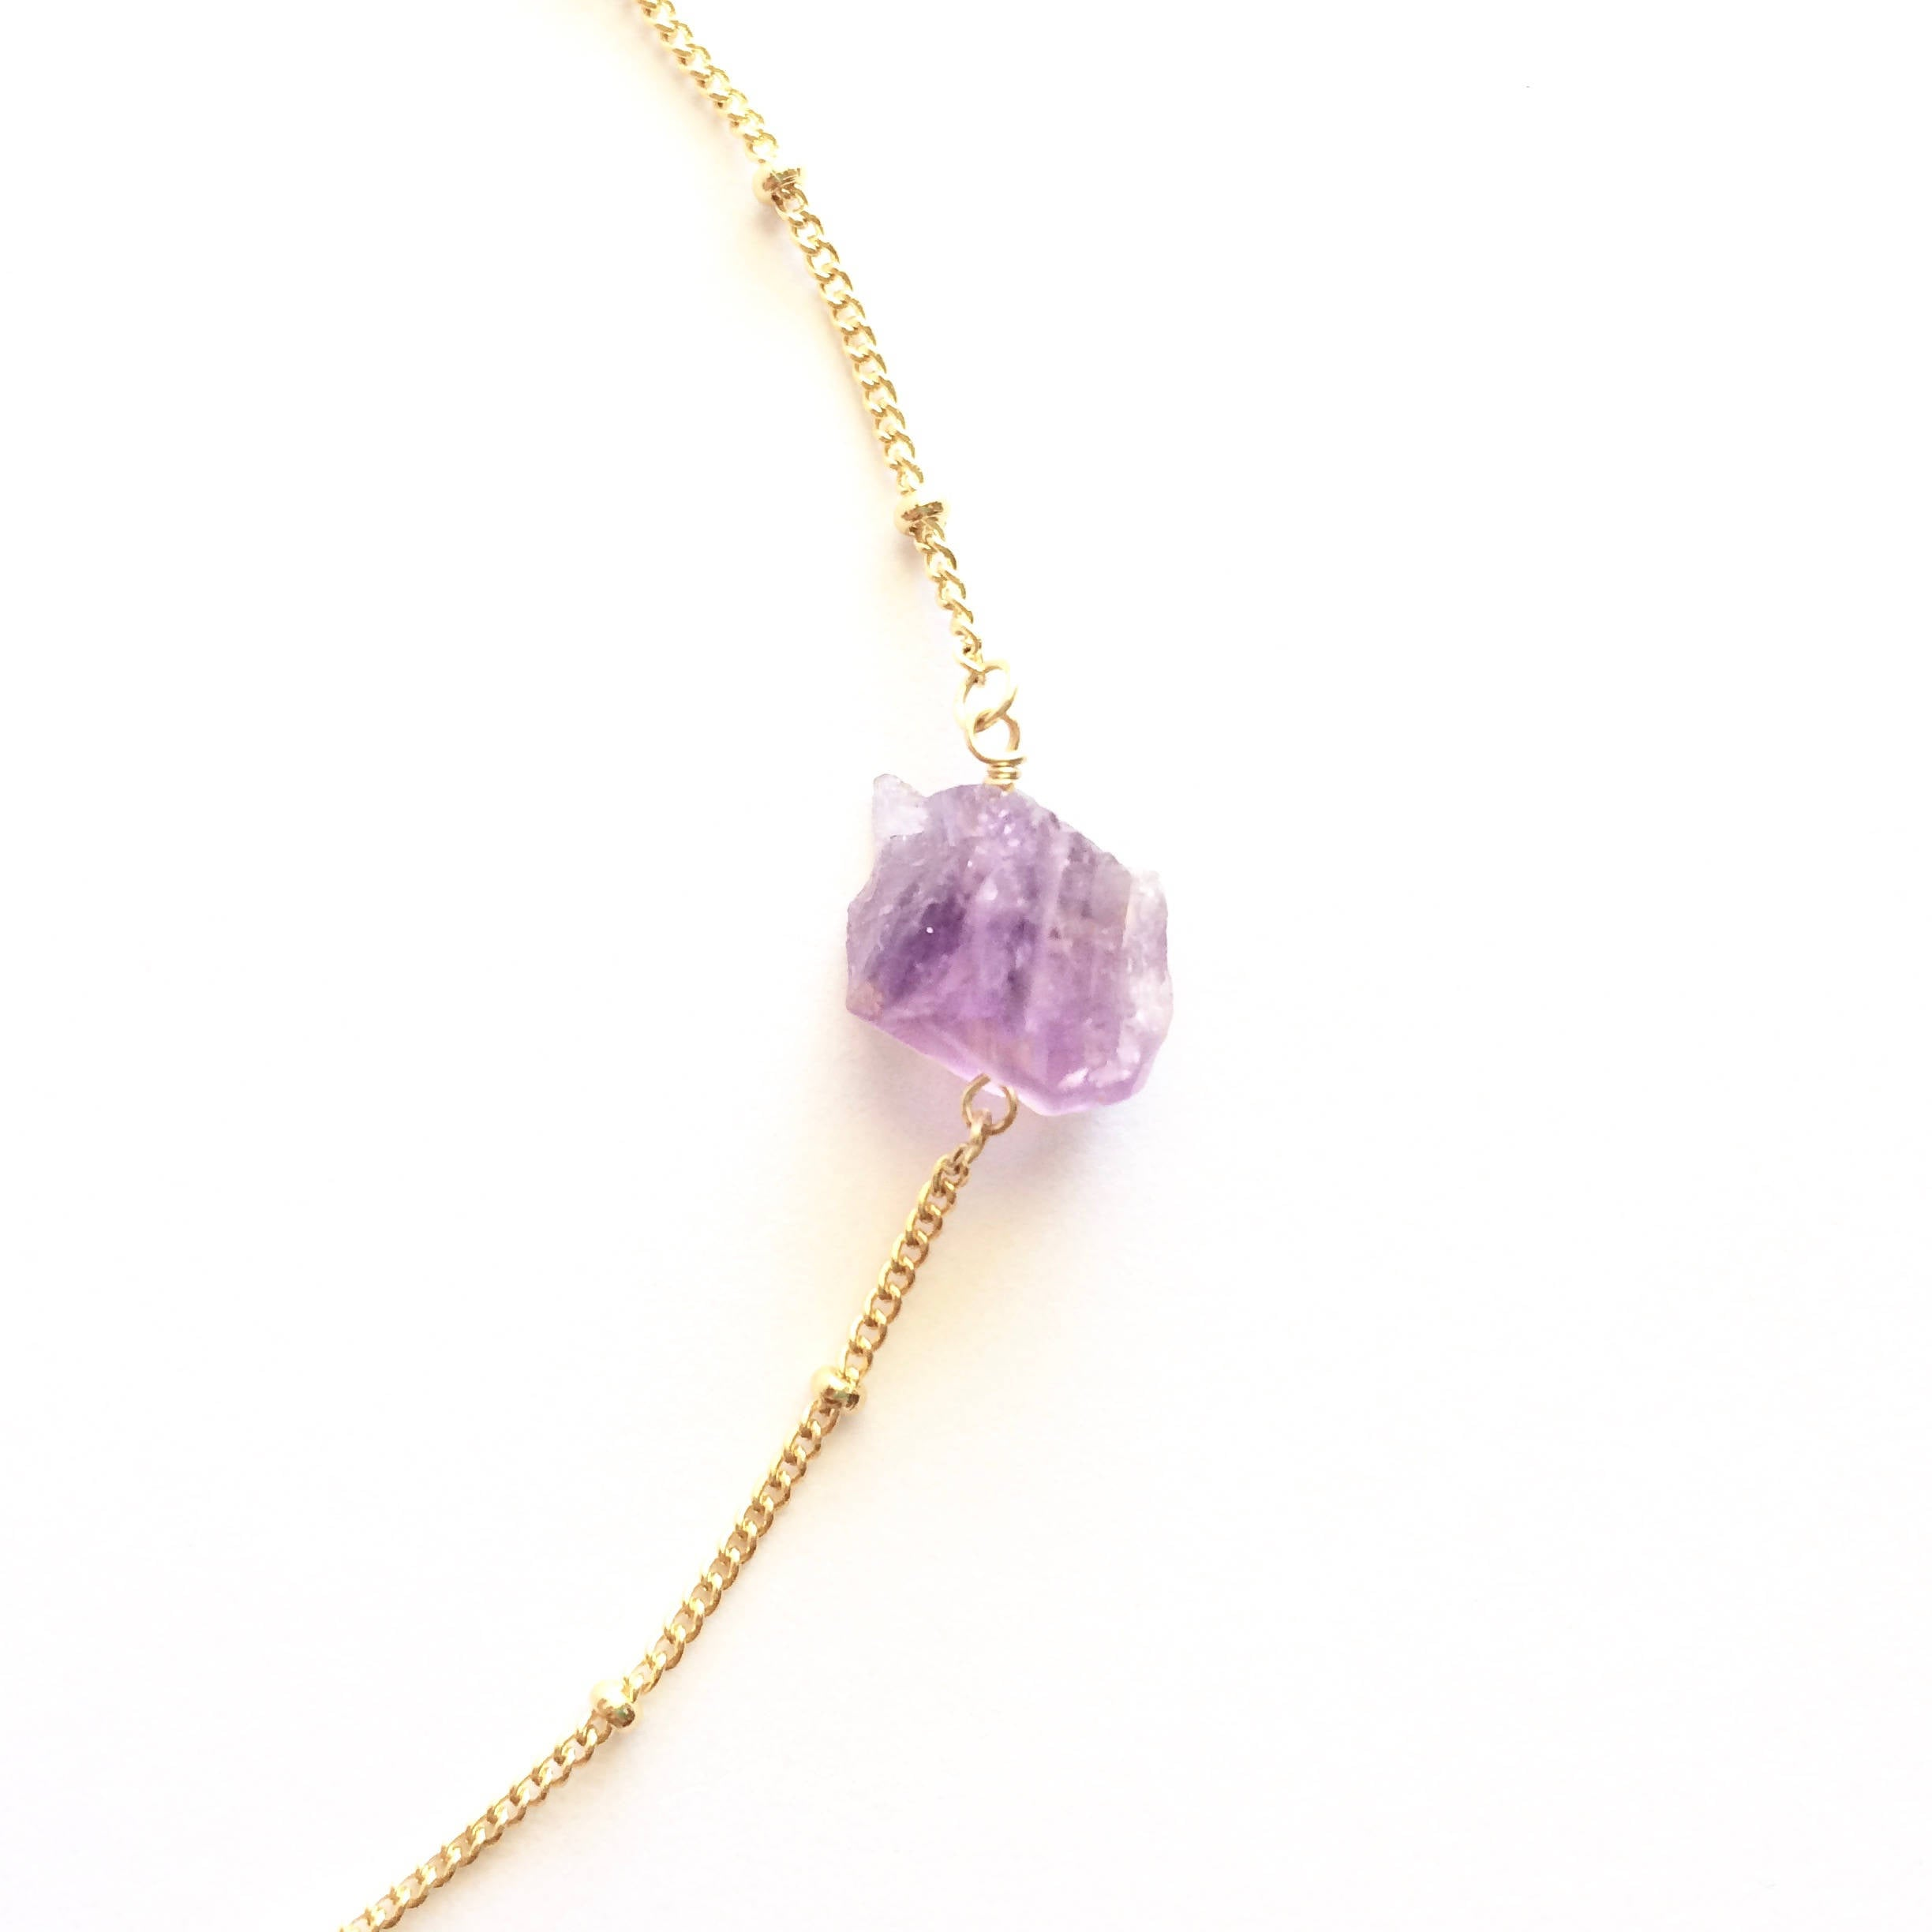 Rough Cut Amethyst Satellite Chain Necklace | Natural Amethyst Jewelry | IB Jewelry | IB Jewelry